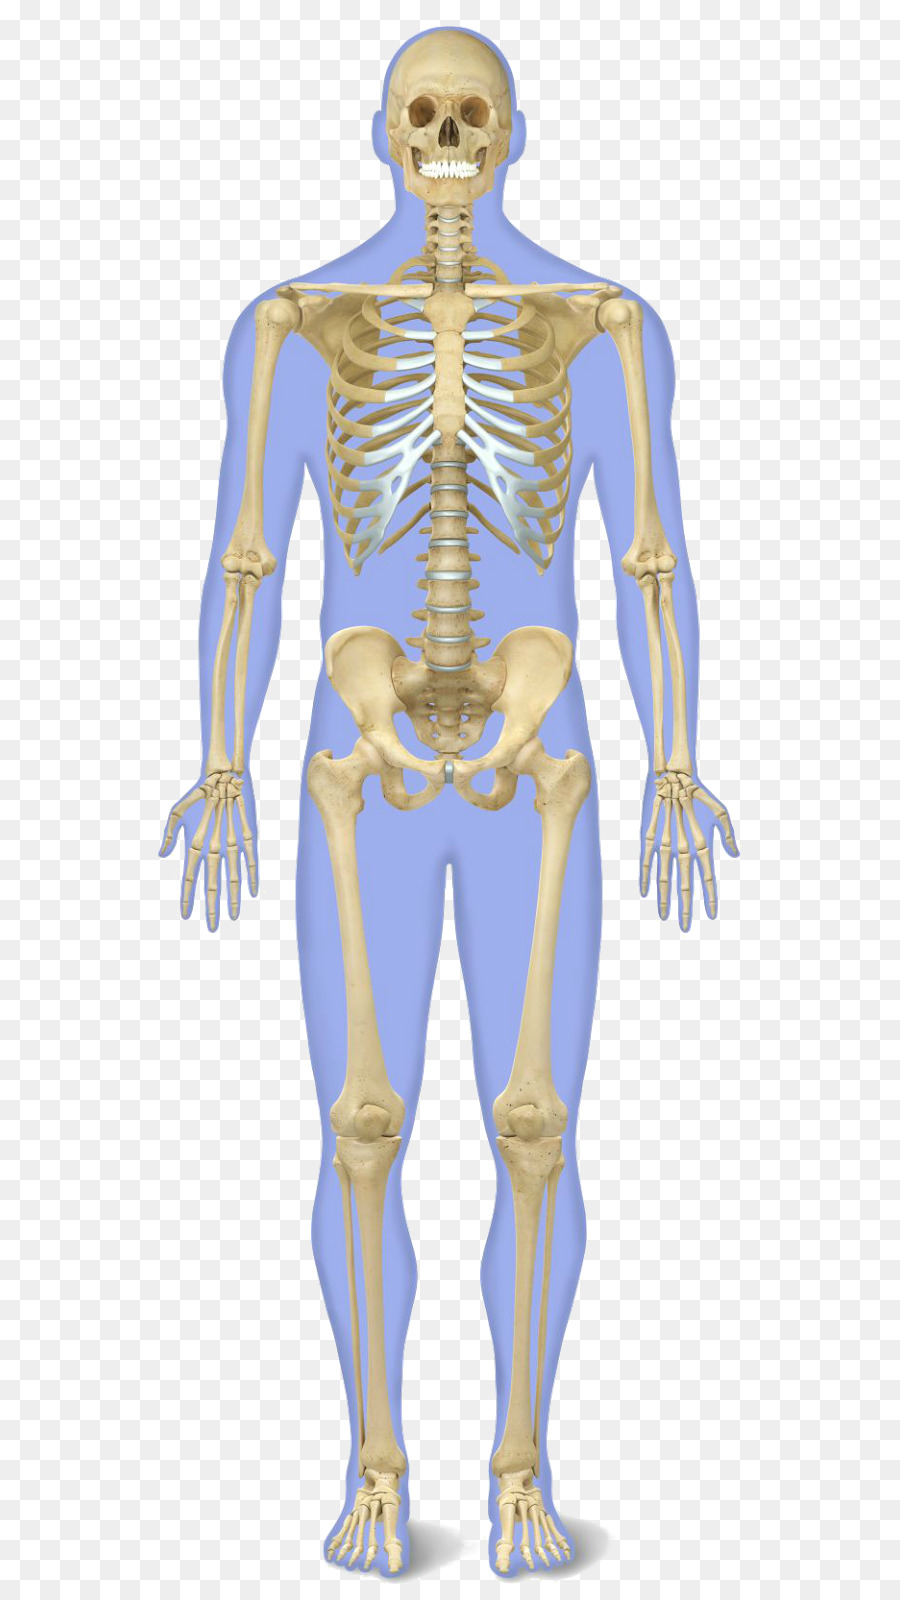 The Human Skeleton Human Body Anatomy Bones Png Download 615